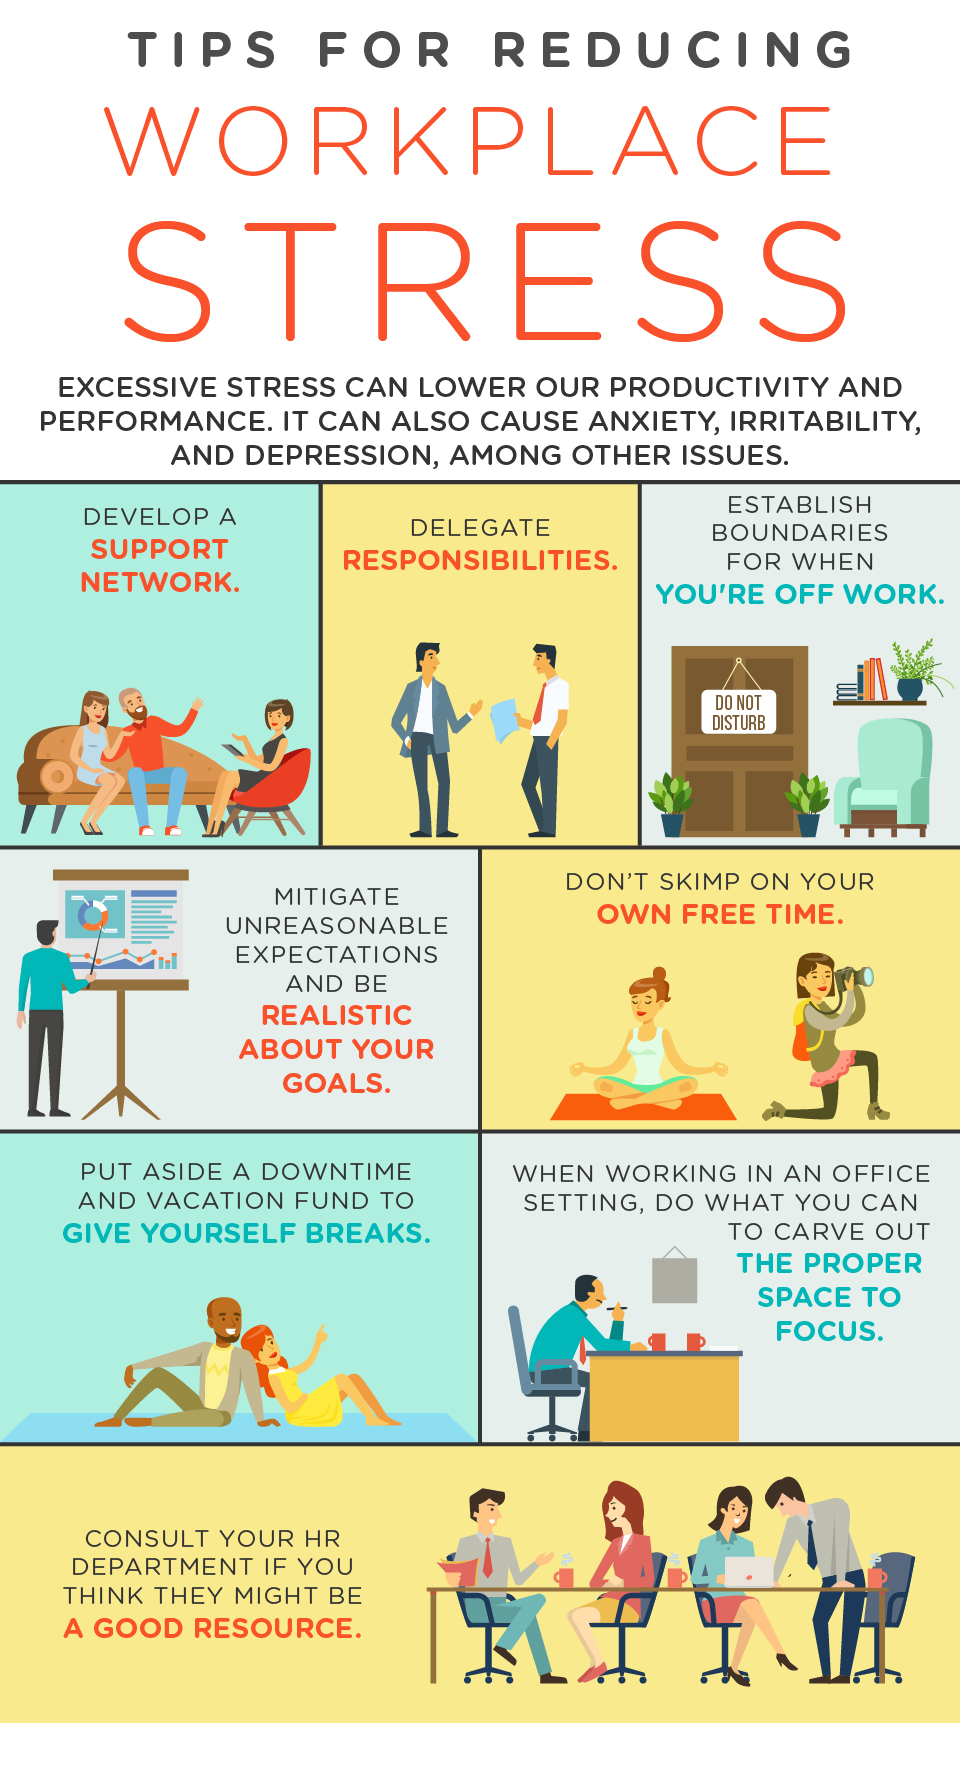 Tips for Reducing Workplace Stress Infographic - work life balance